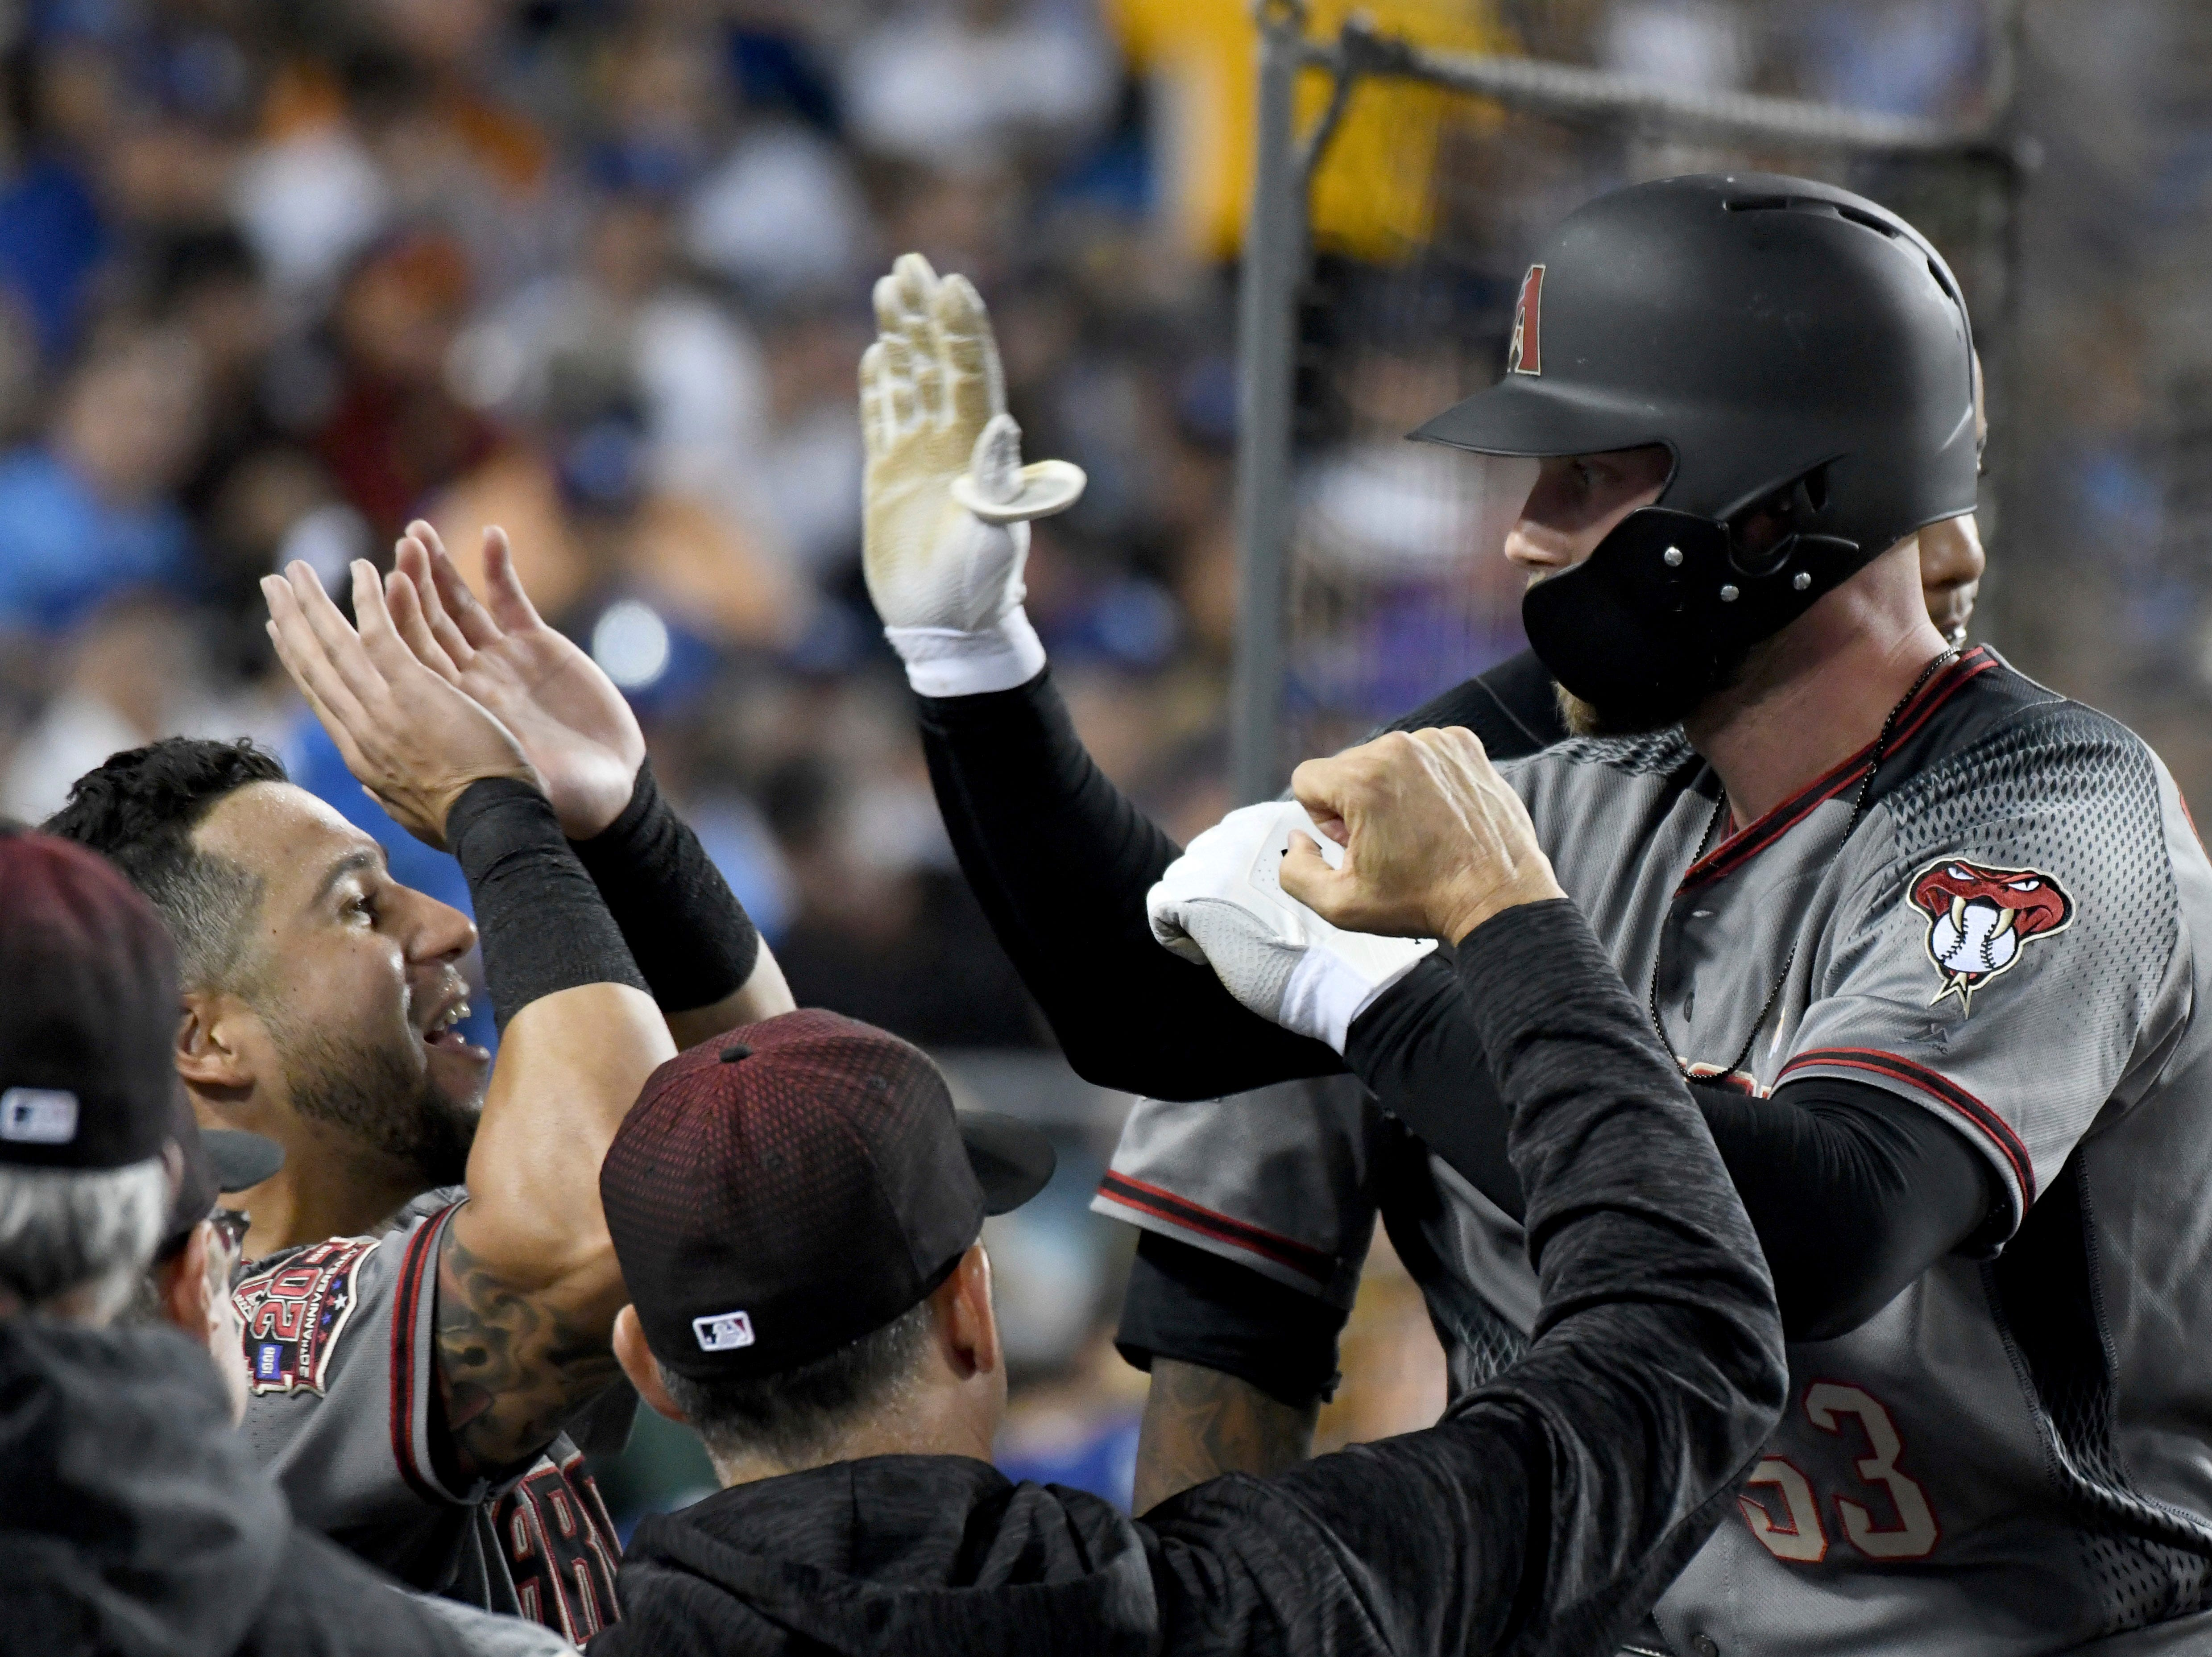 Arizona Diamondbacks' Christian Walker (53) is congratulated in the dugout after hitting a solo home run in the sixth inning of a baseball game against the Los Angeles Dodgers, Saturday, Sept. 1, 2018, in Los Angeles.